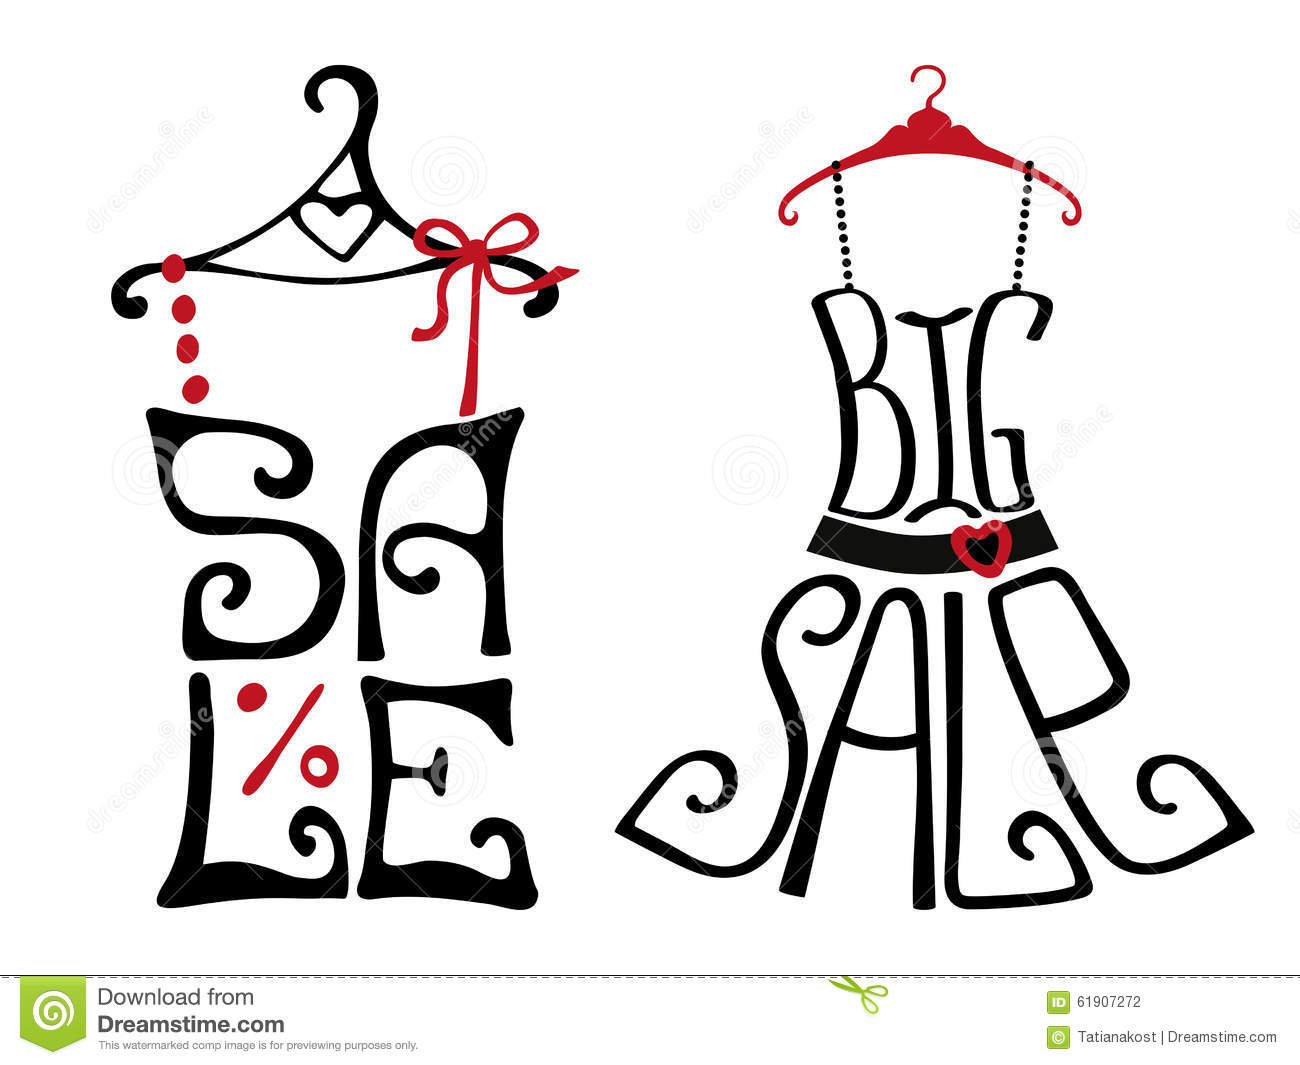 71c09385a Big Sale lettering in shirt and dress shape.Icons set.Summer Fashion vector,Typographic  background design.Shirt hanging on hanger. Illustration.For poster ...